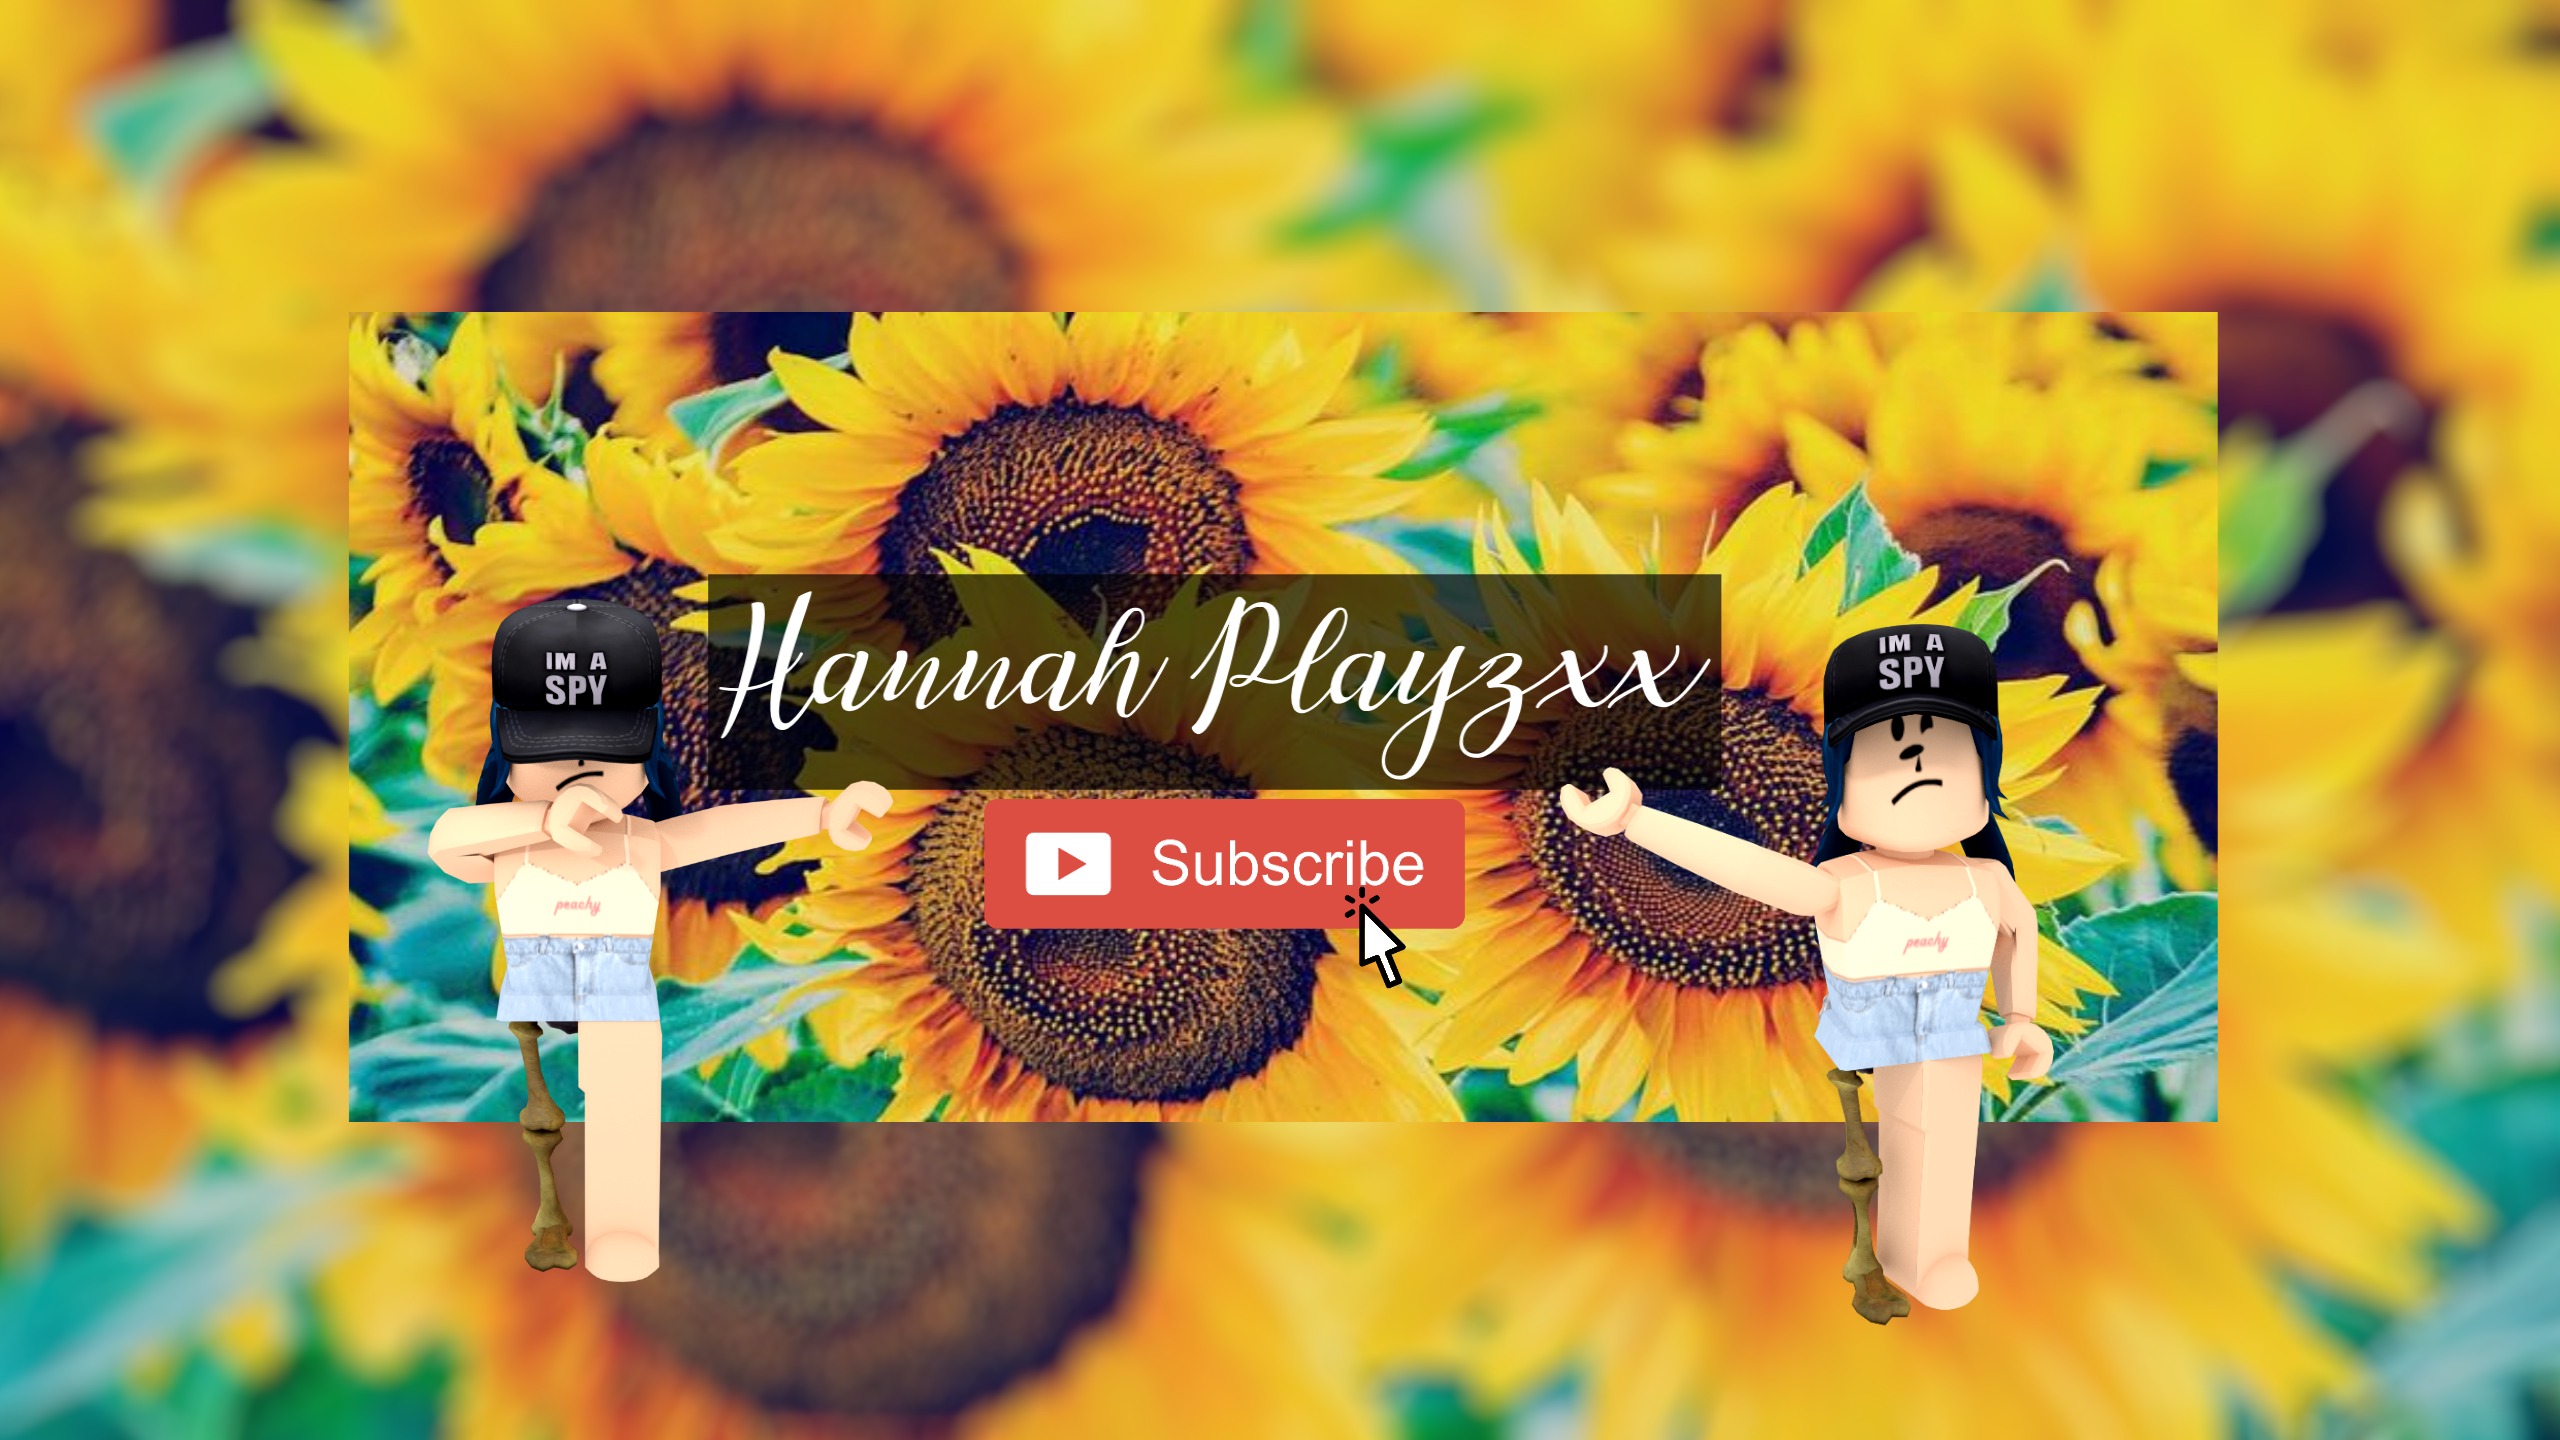 Roblox Gfx Youtube Icon Youtube Hannah Playzxx Youtube Banner Roblox Render By Robloxminis On Deviantart